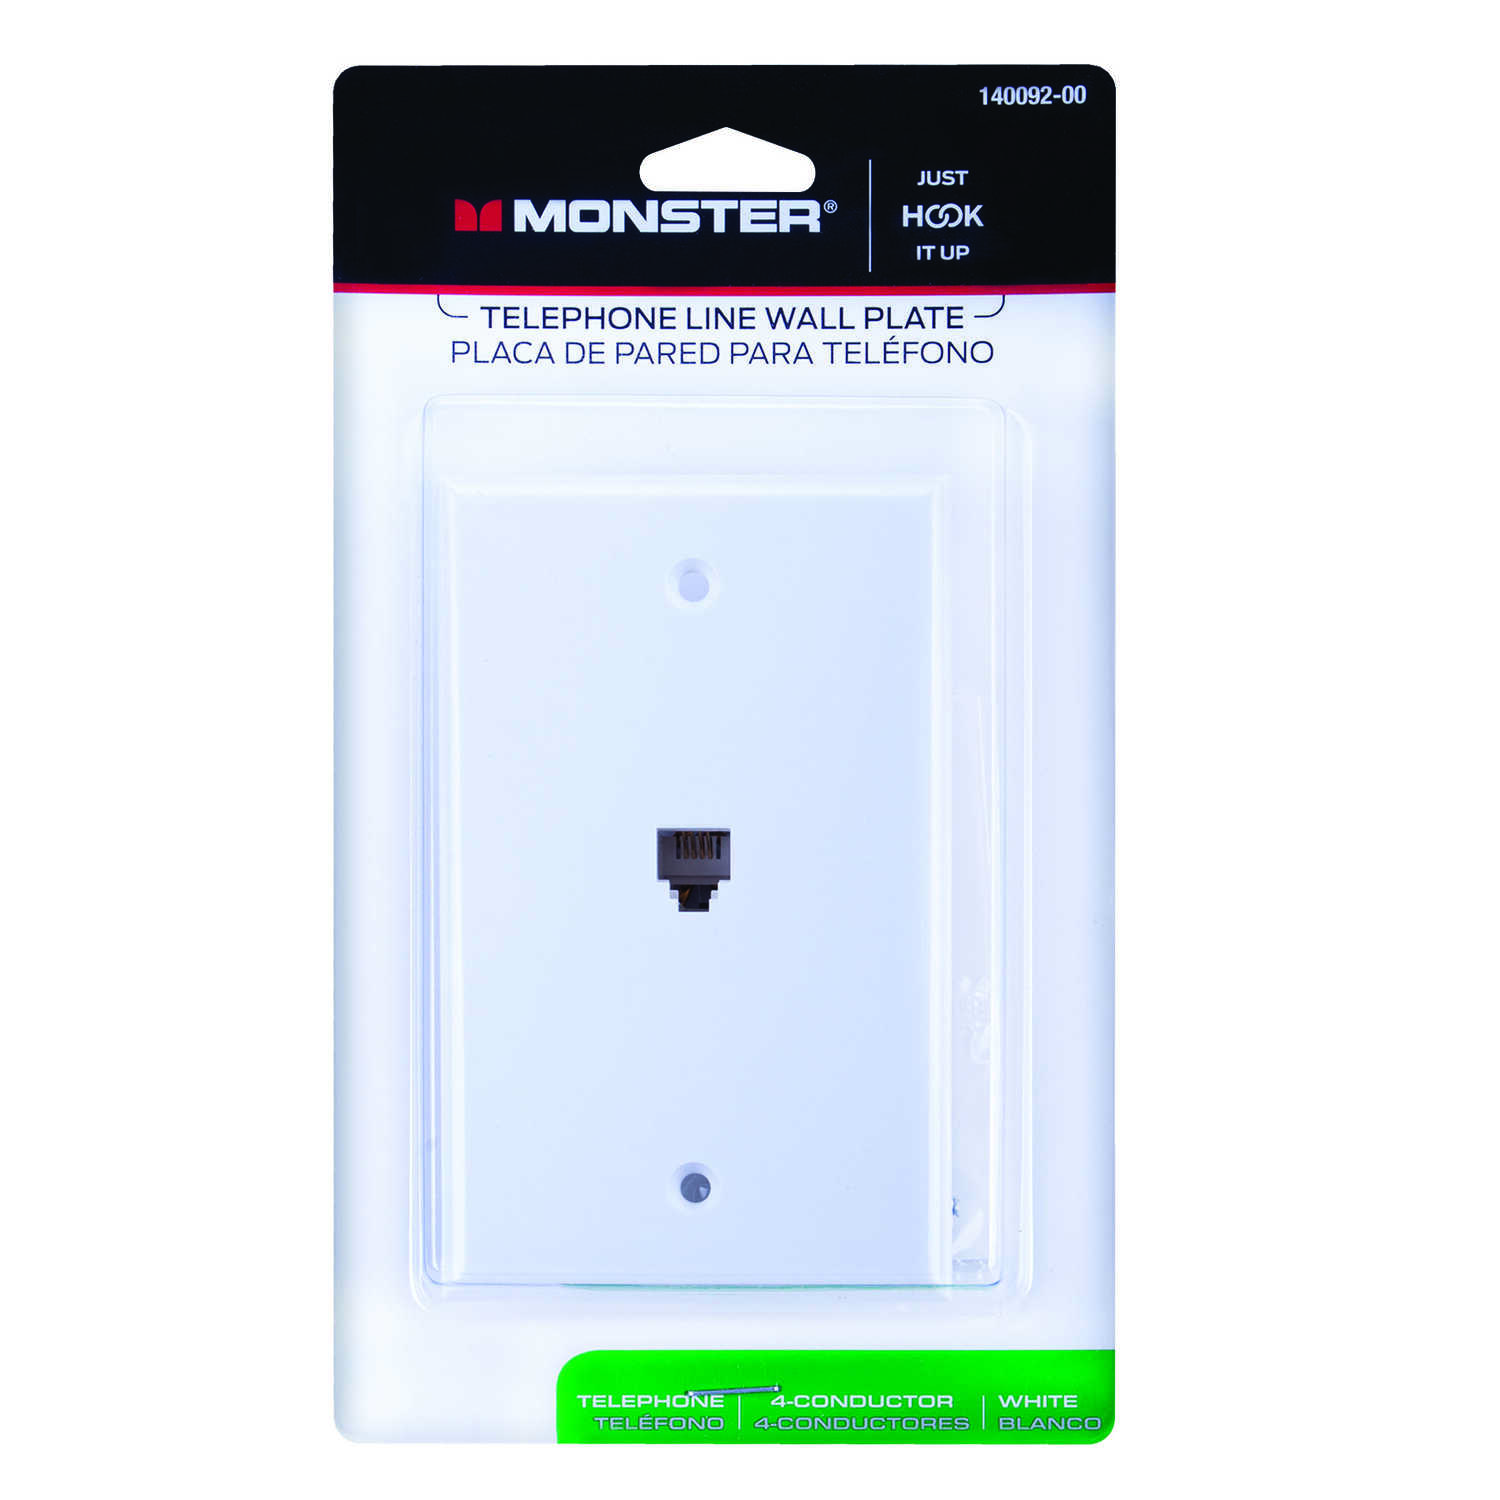 Monster Cable  Just Hook It Up  White  1 gang Plastic  Telephone  Wall Plate  1 pk